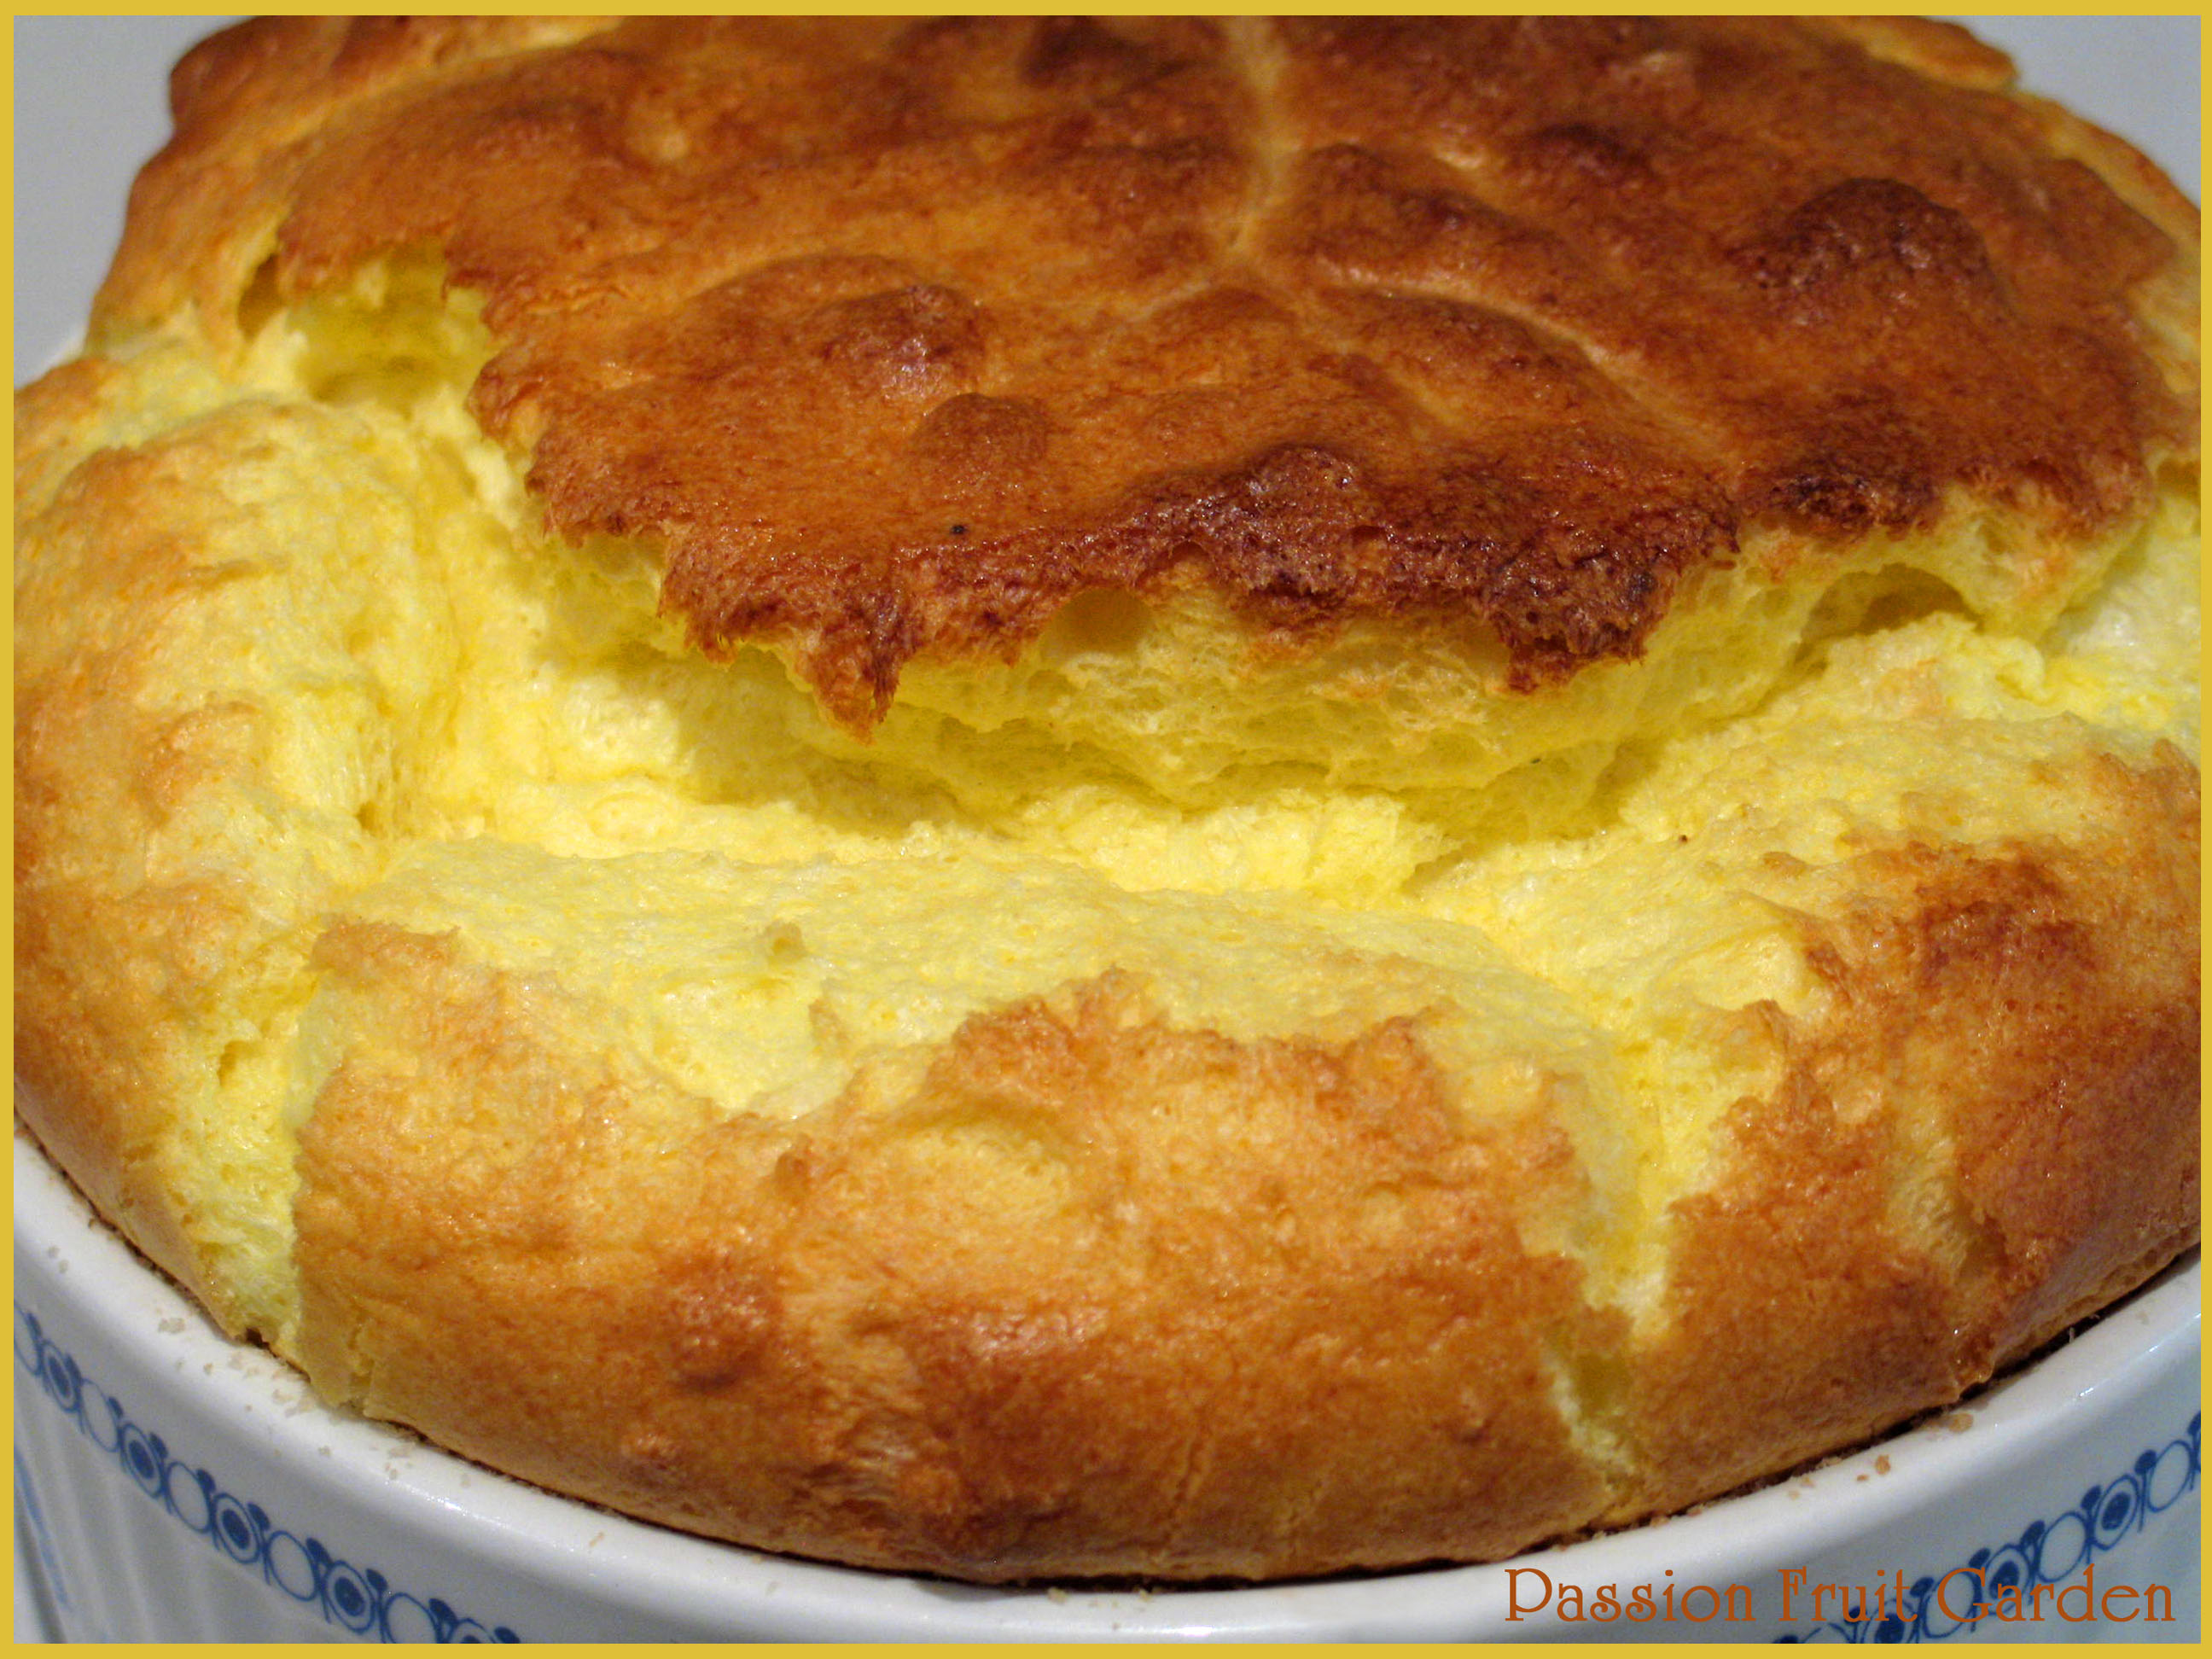 Cheese Soufflé | Passion Fruit Garden